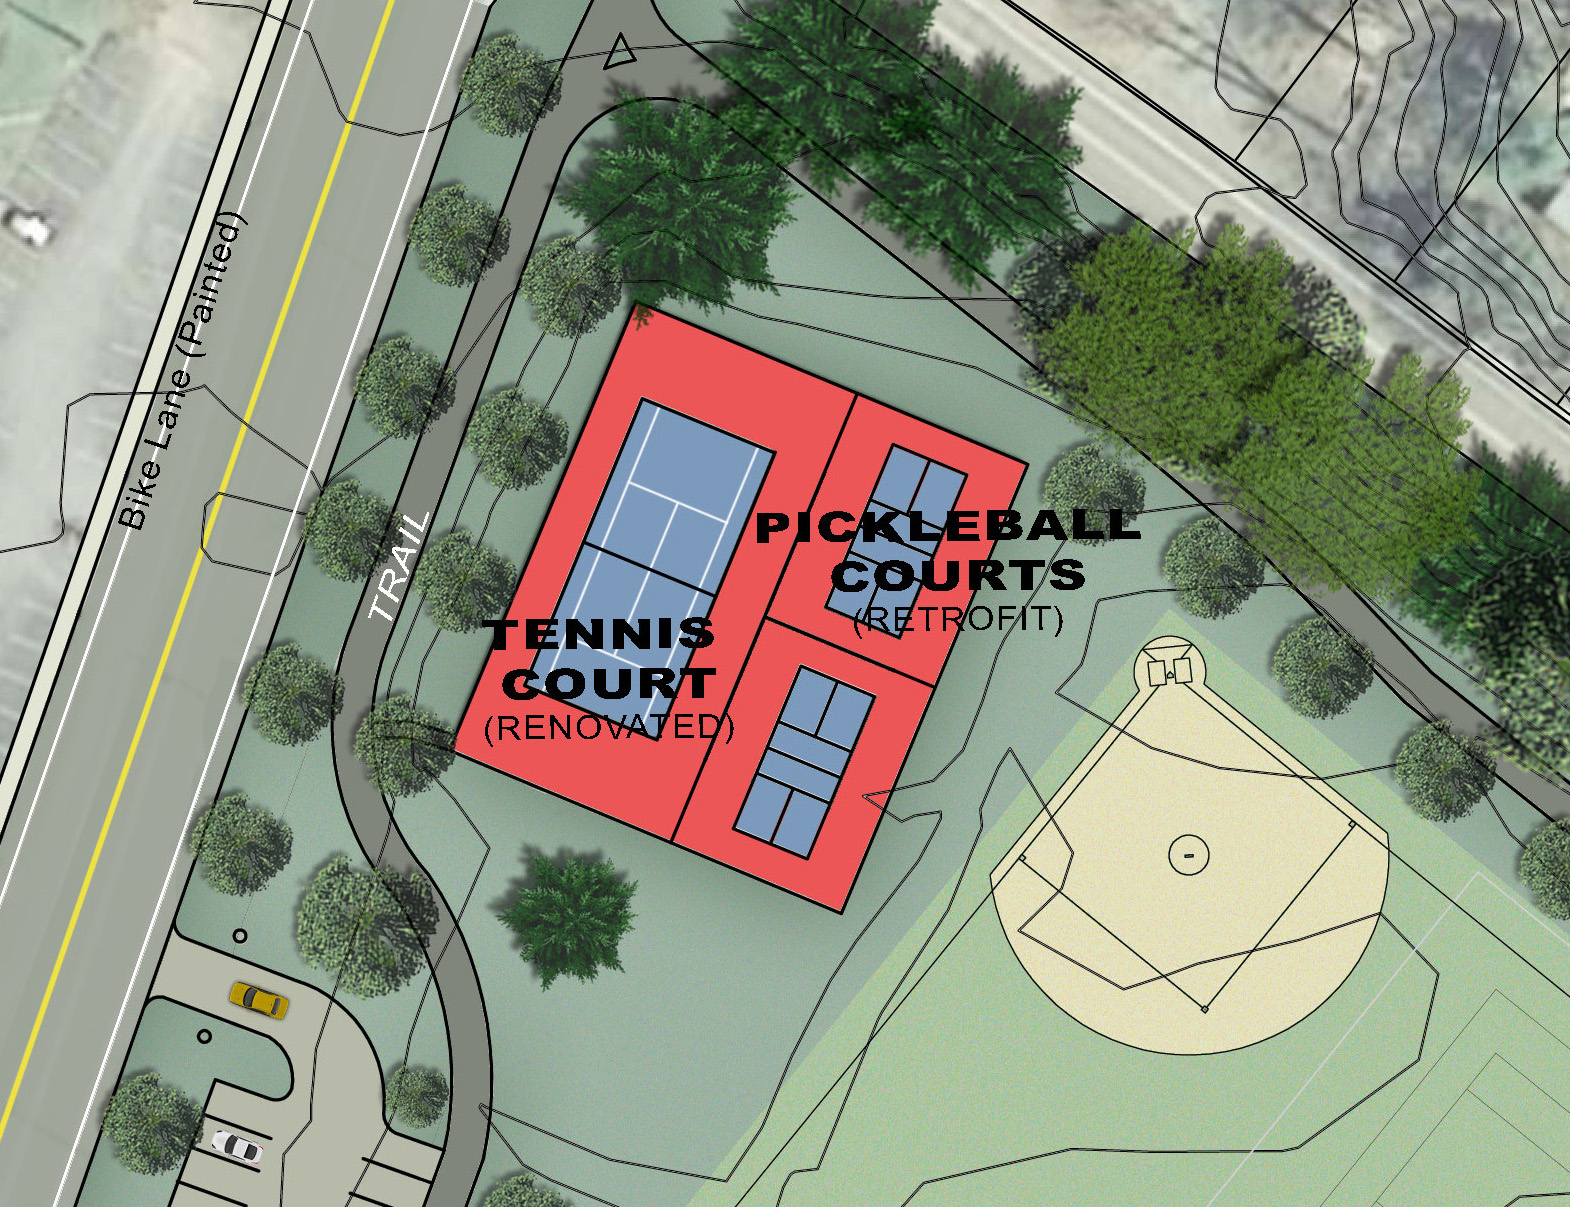 Proposed New Courts -